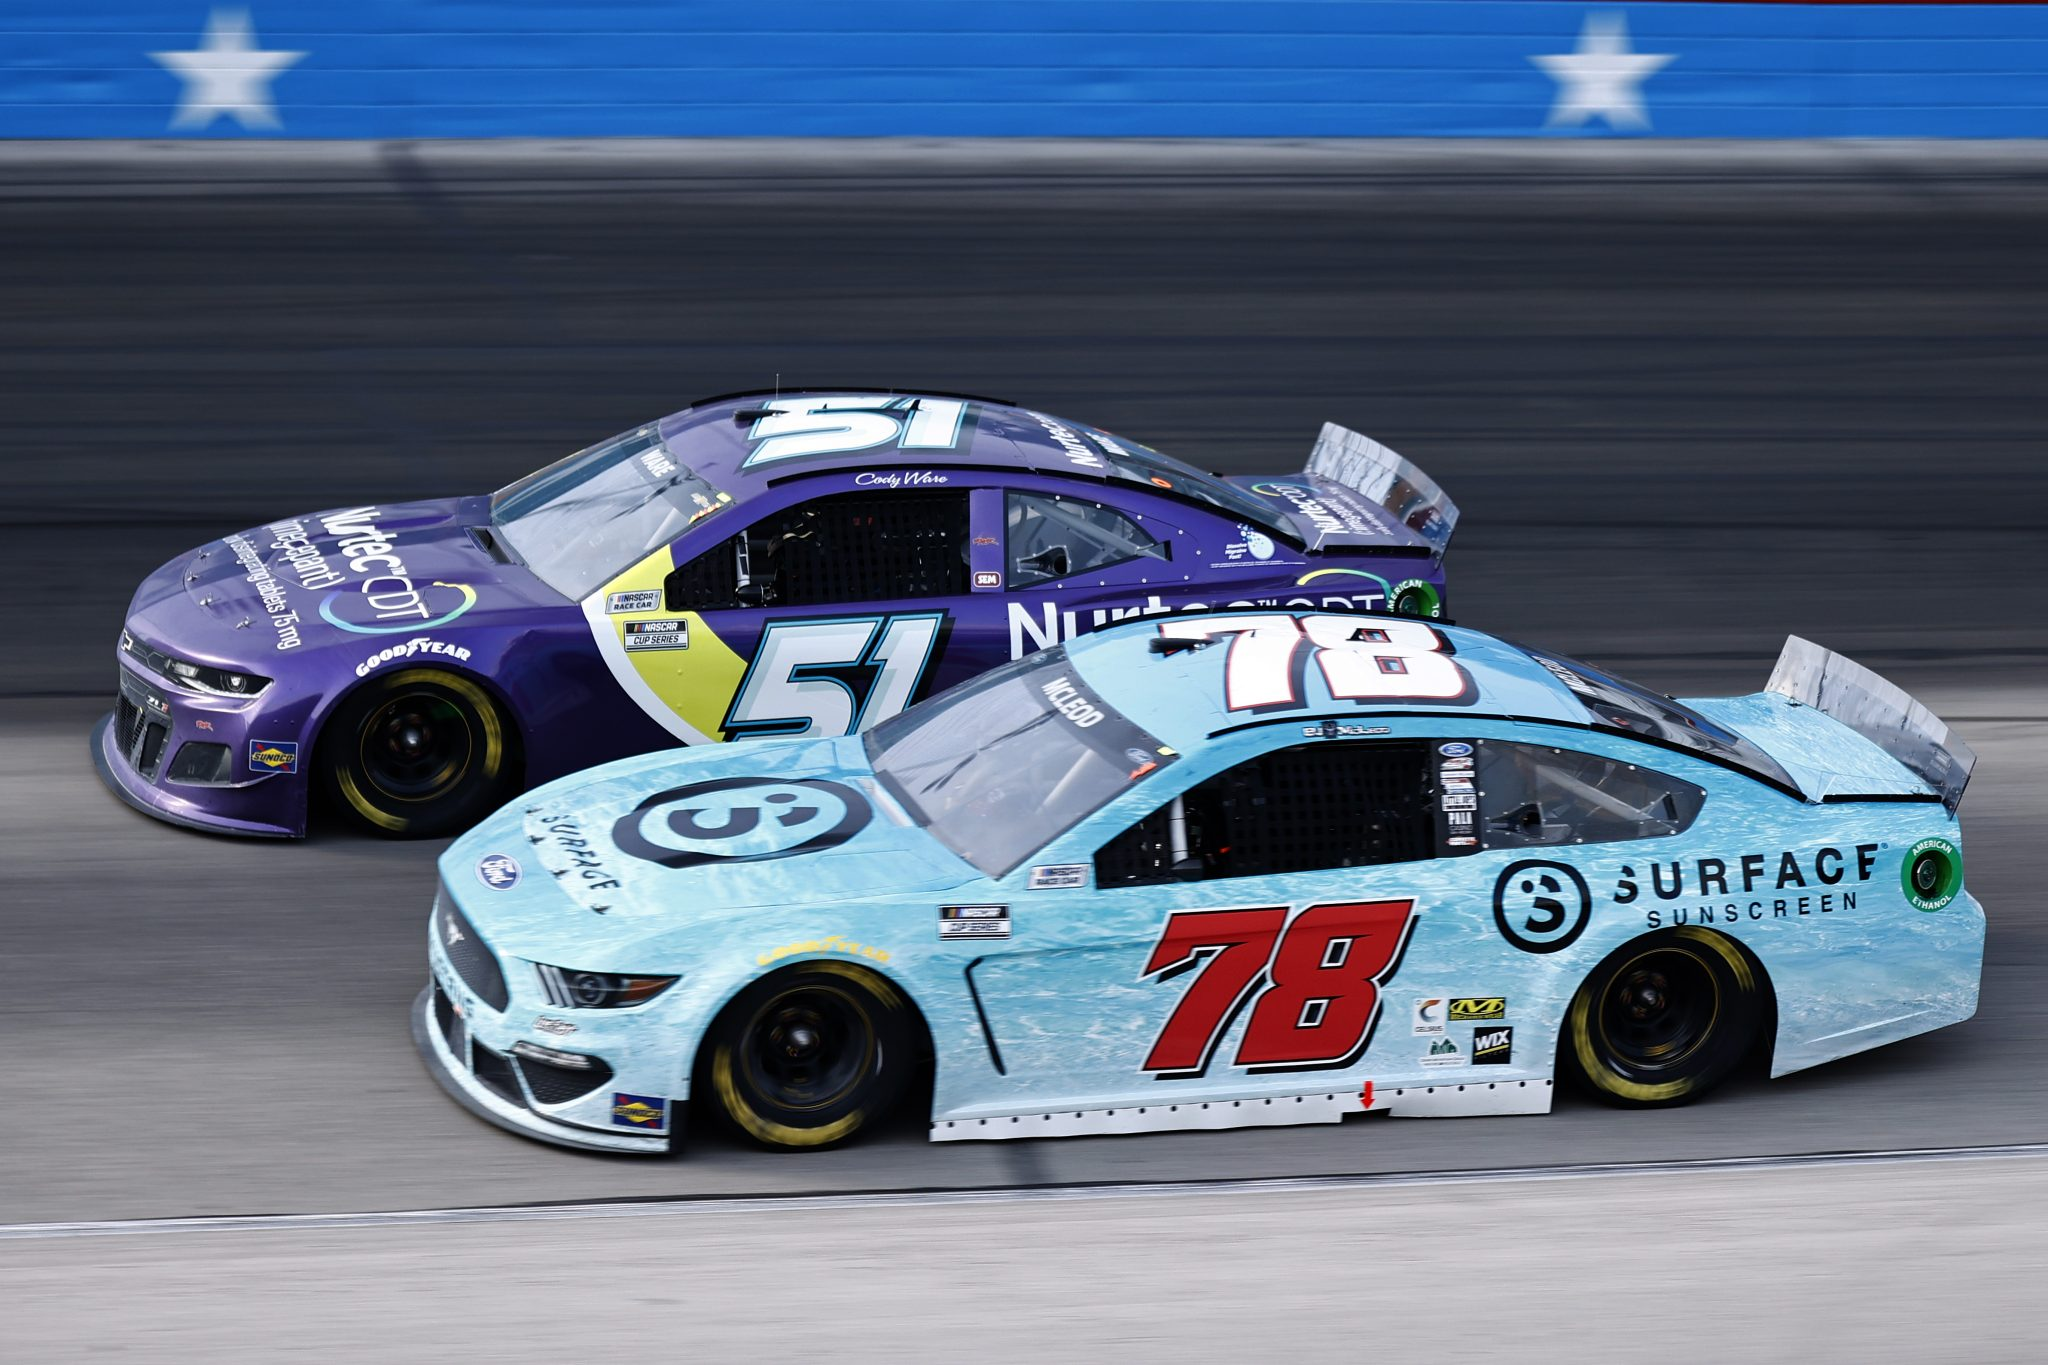 FORT WORTH, TEXAS - JUNE 13: BJ McLeod, driver of the #78 Surface Sunscreen Ford, and Cody Ware, driver of the #51 Petty Ware Racing Chevrolet, race during the NASCAR All-Star Open at Texas Motor Speedway on June 13, 2021 in Fort Worth, Texas. (Photo by Jared C. Tilton/Getty Images)   Getty Images